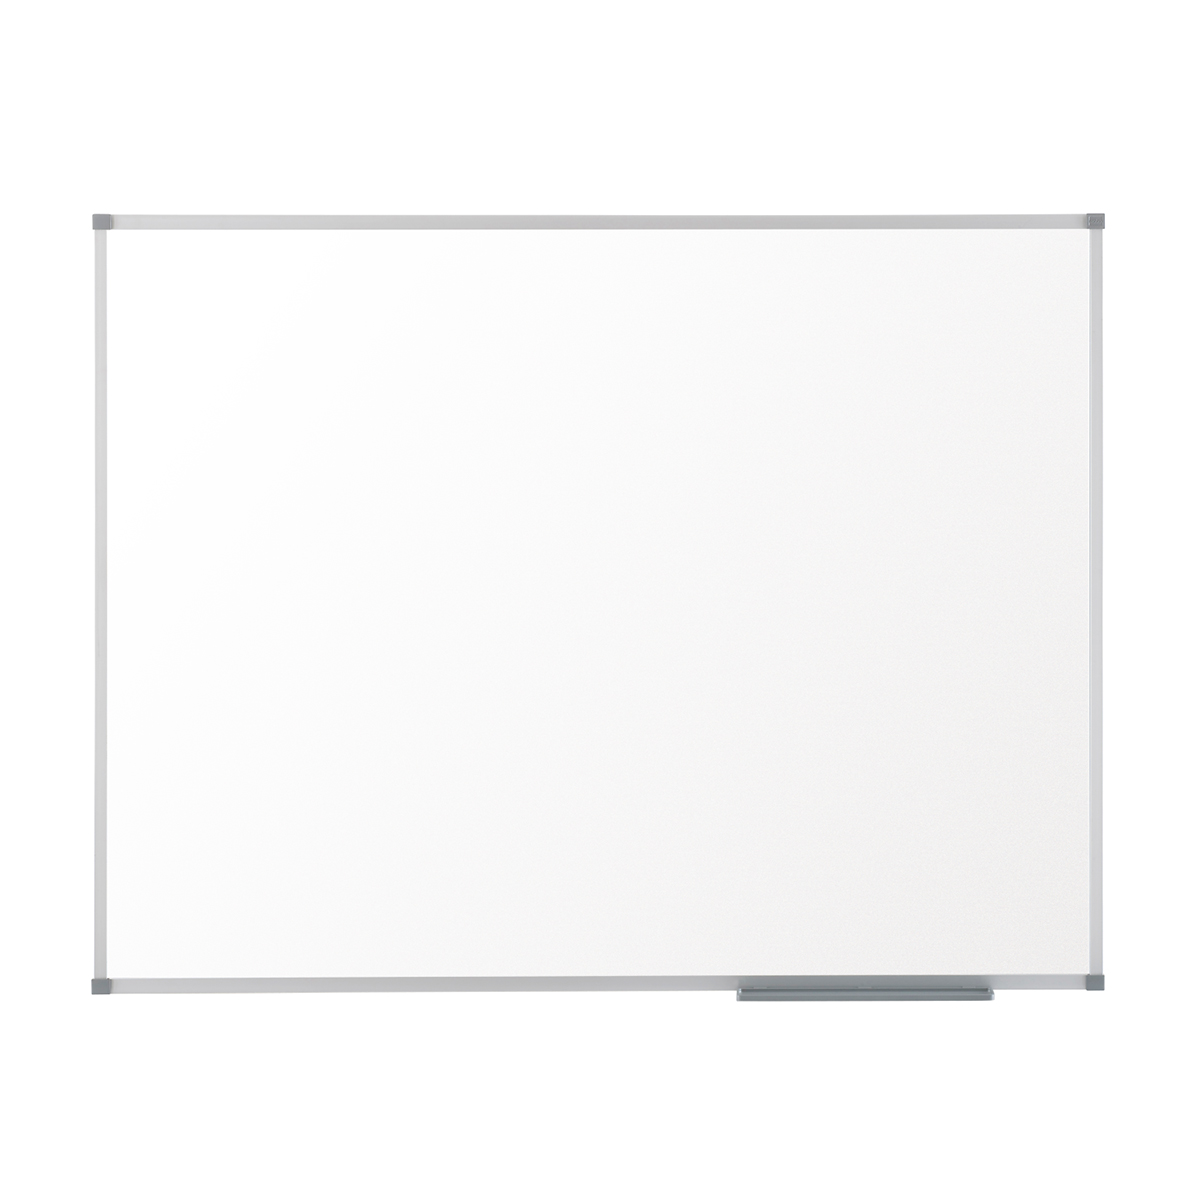 Nobo 1902641 Classic Steel Magnetic Whiteboard 600 x 450mm